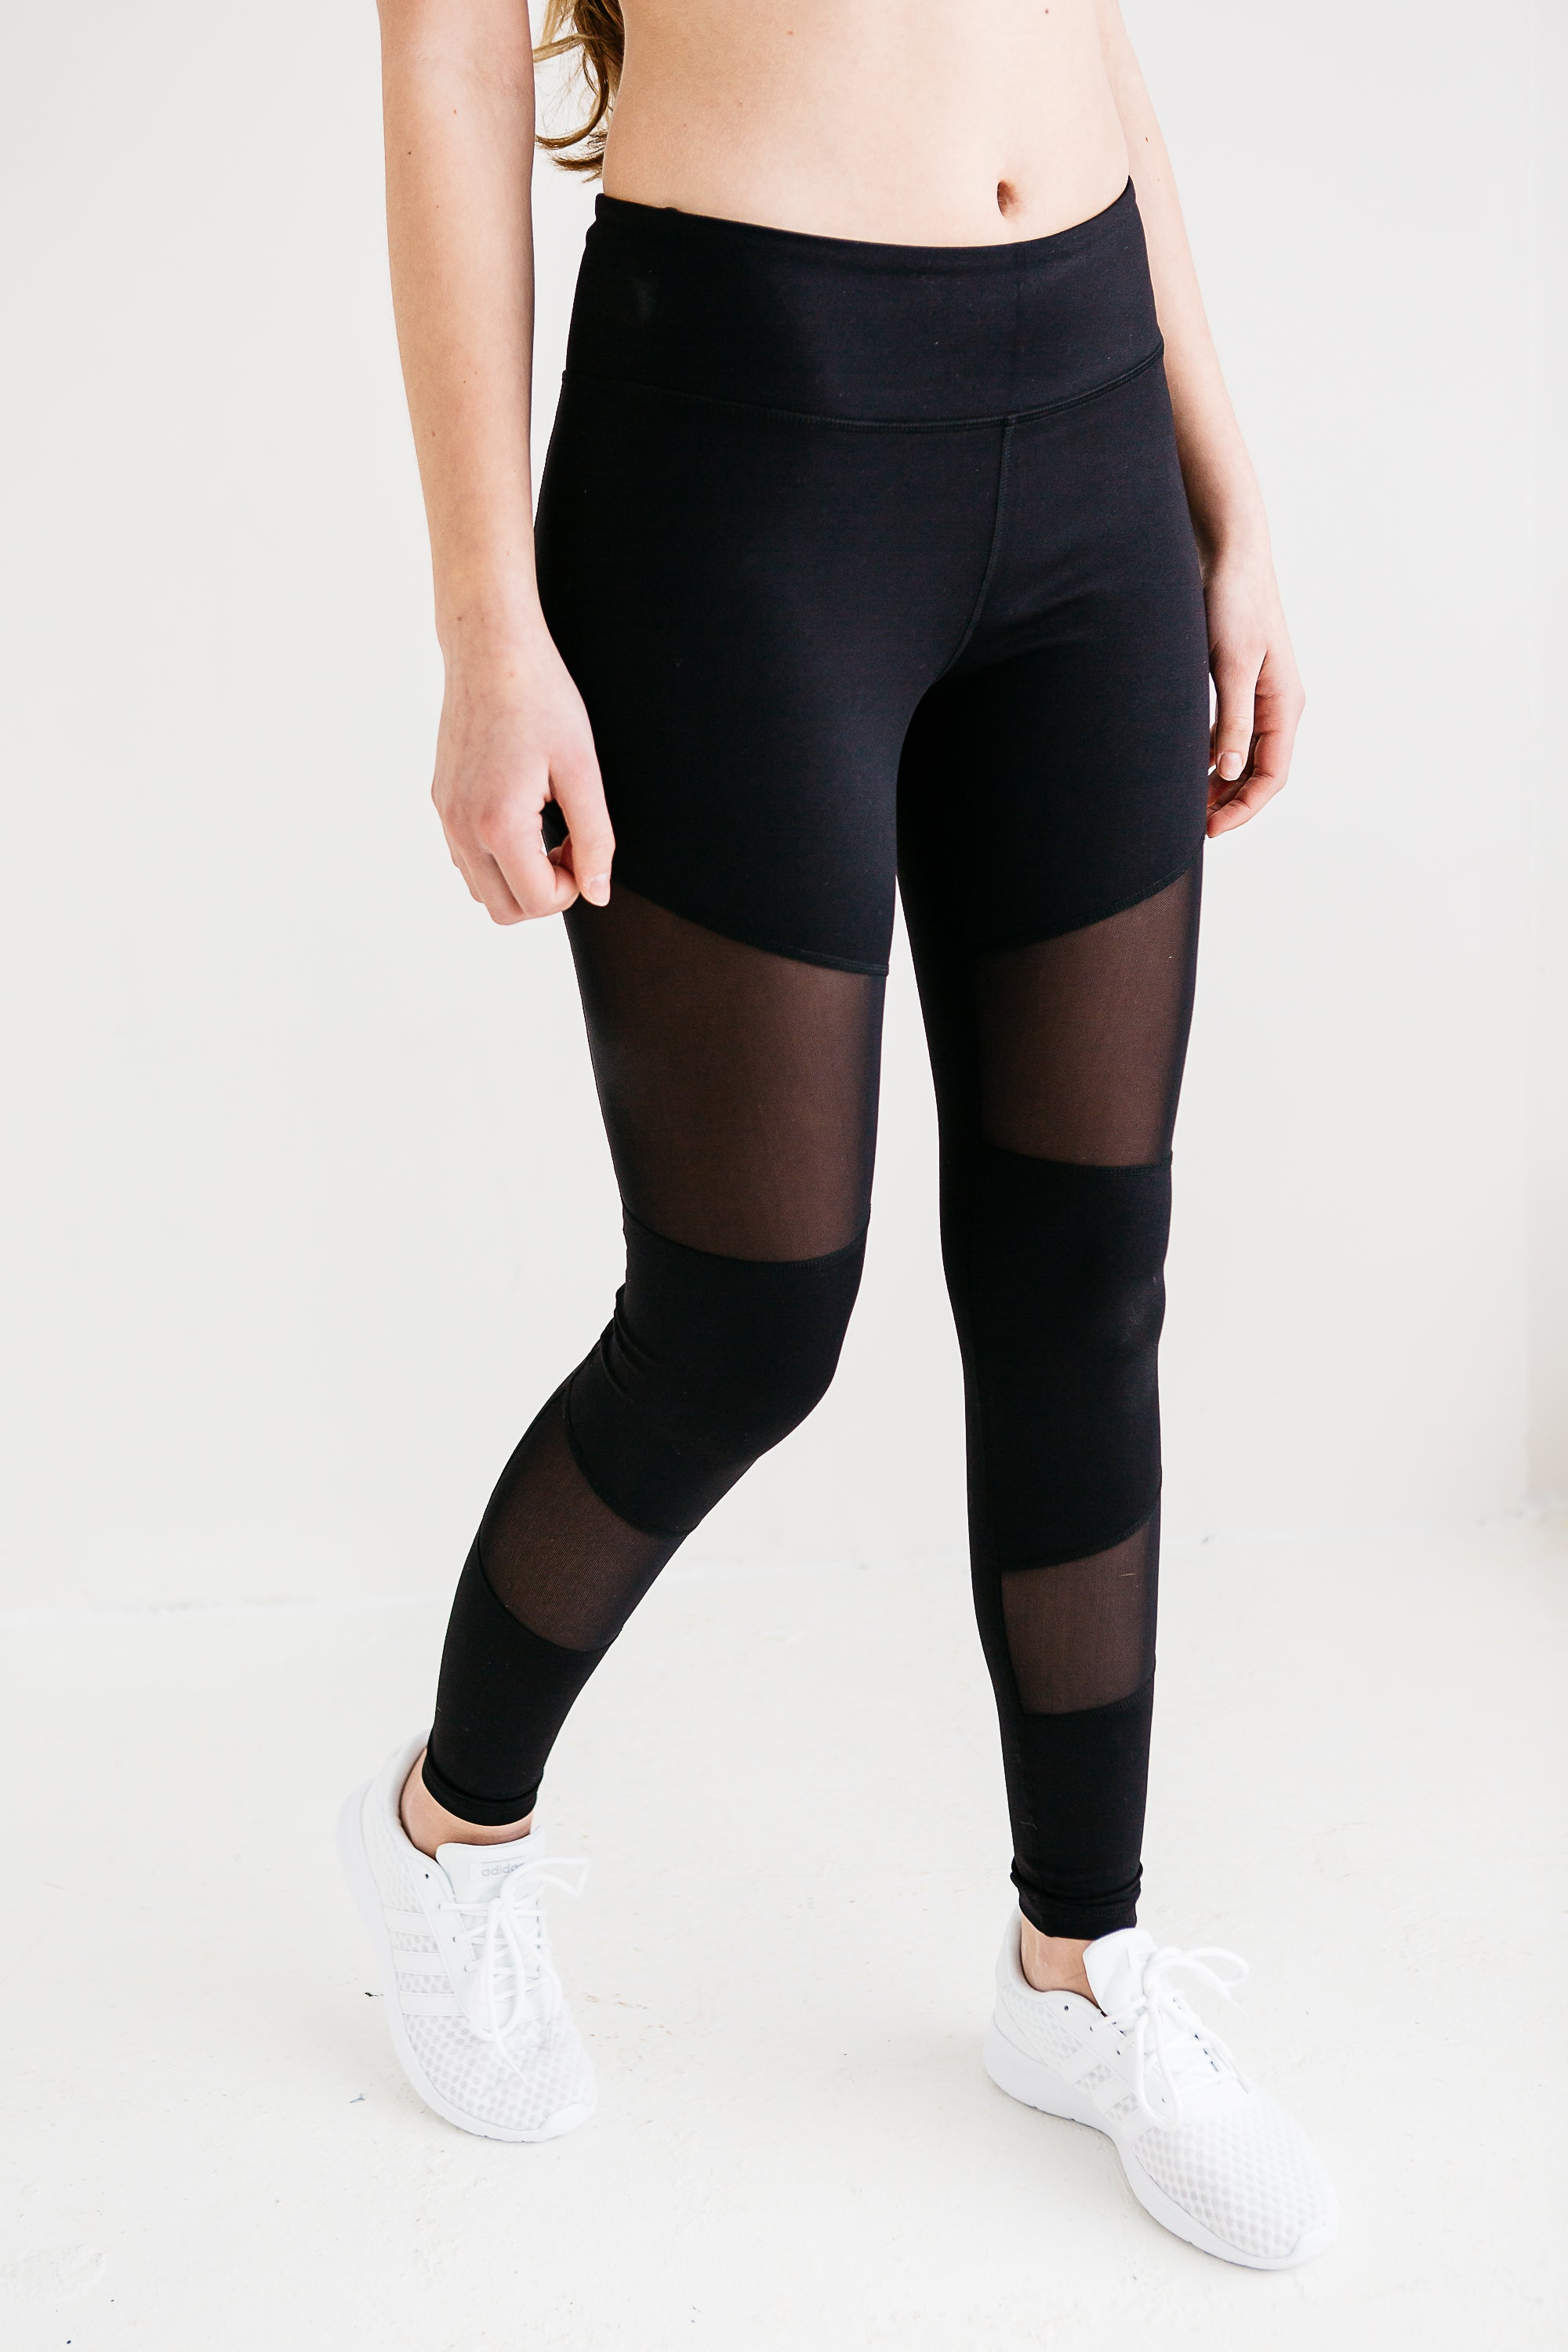 Don't Mesh Around Leggings